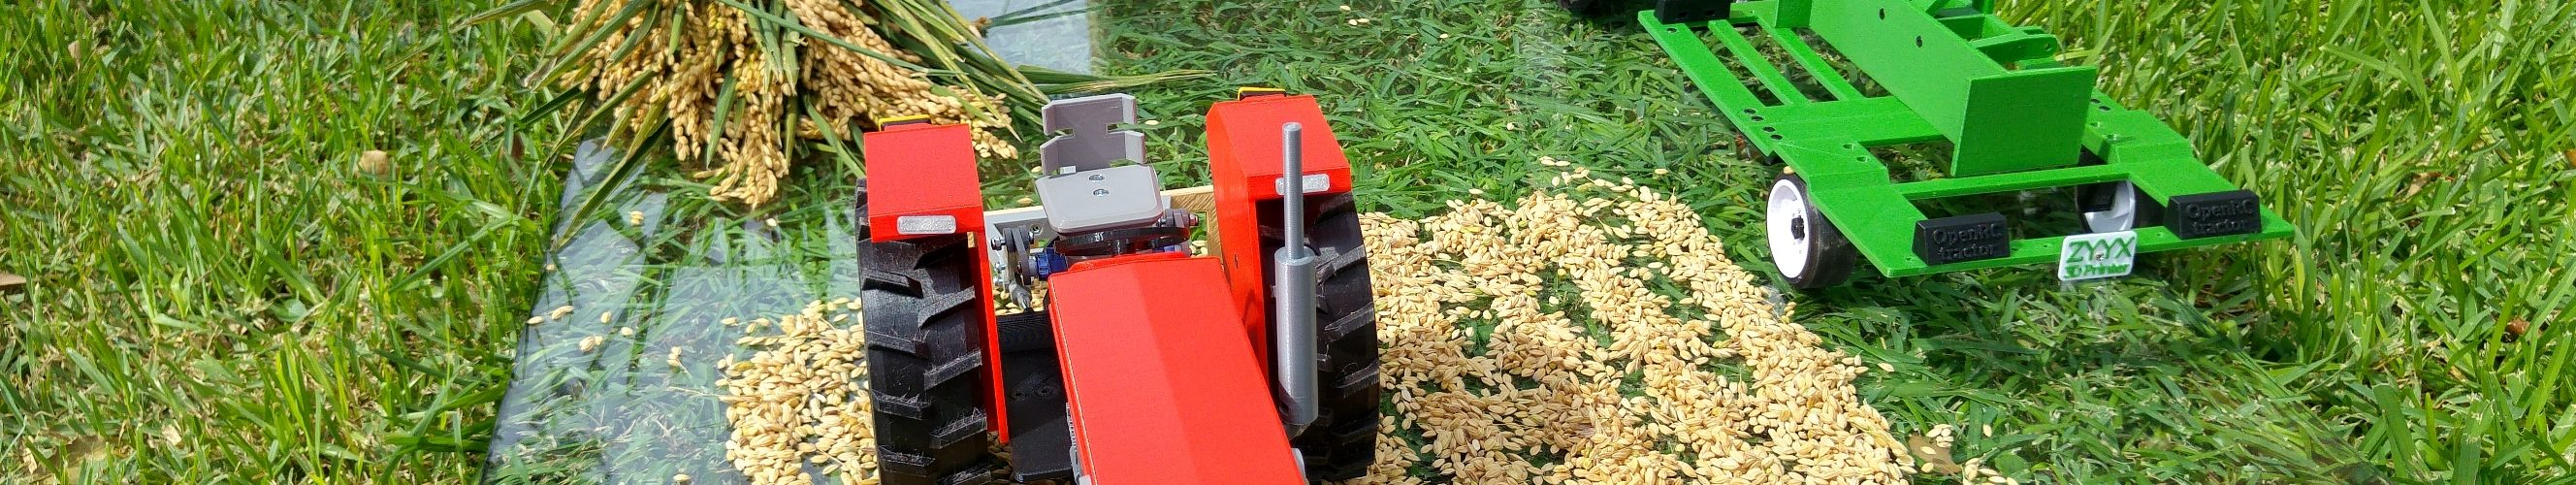 openrc-tractor-release-rice-front